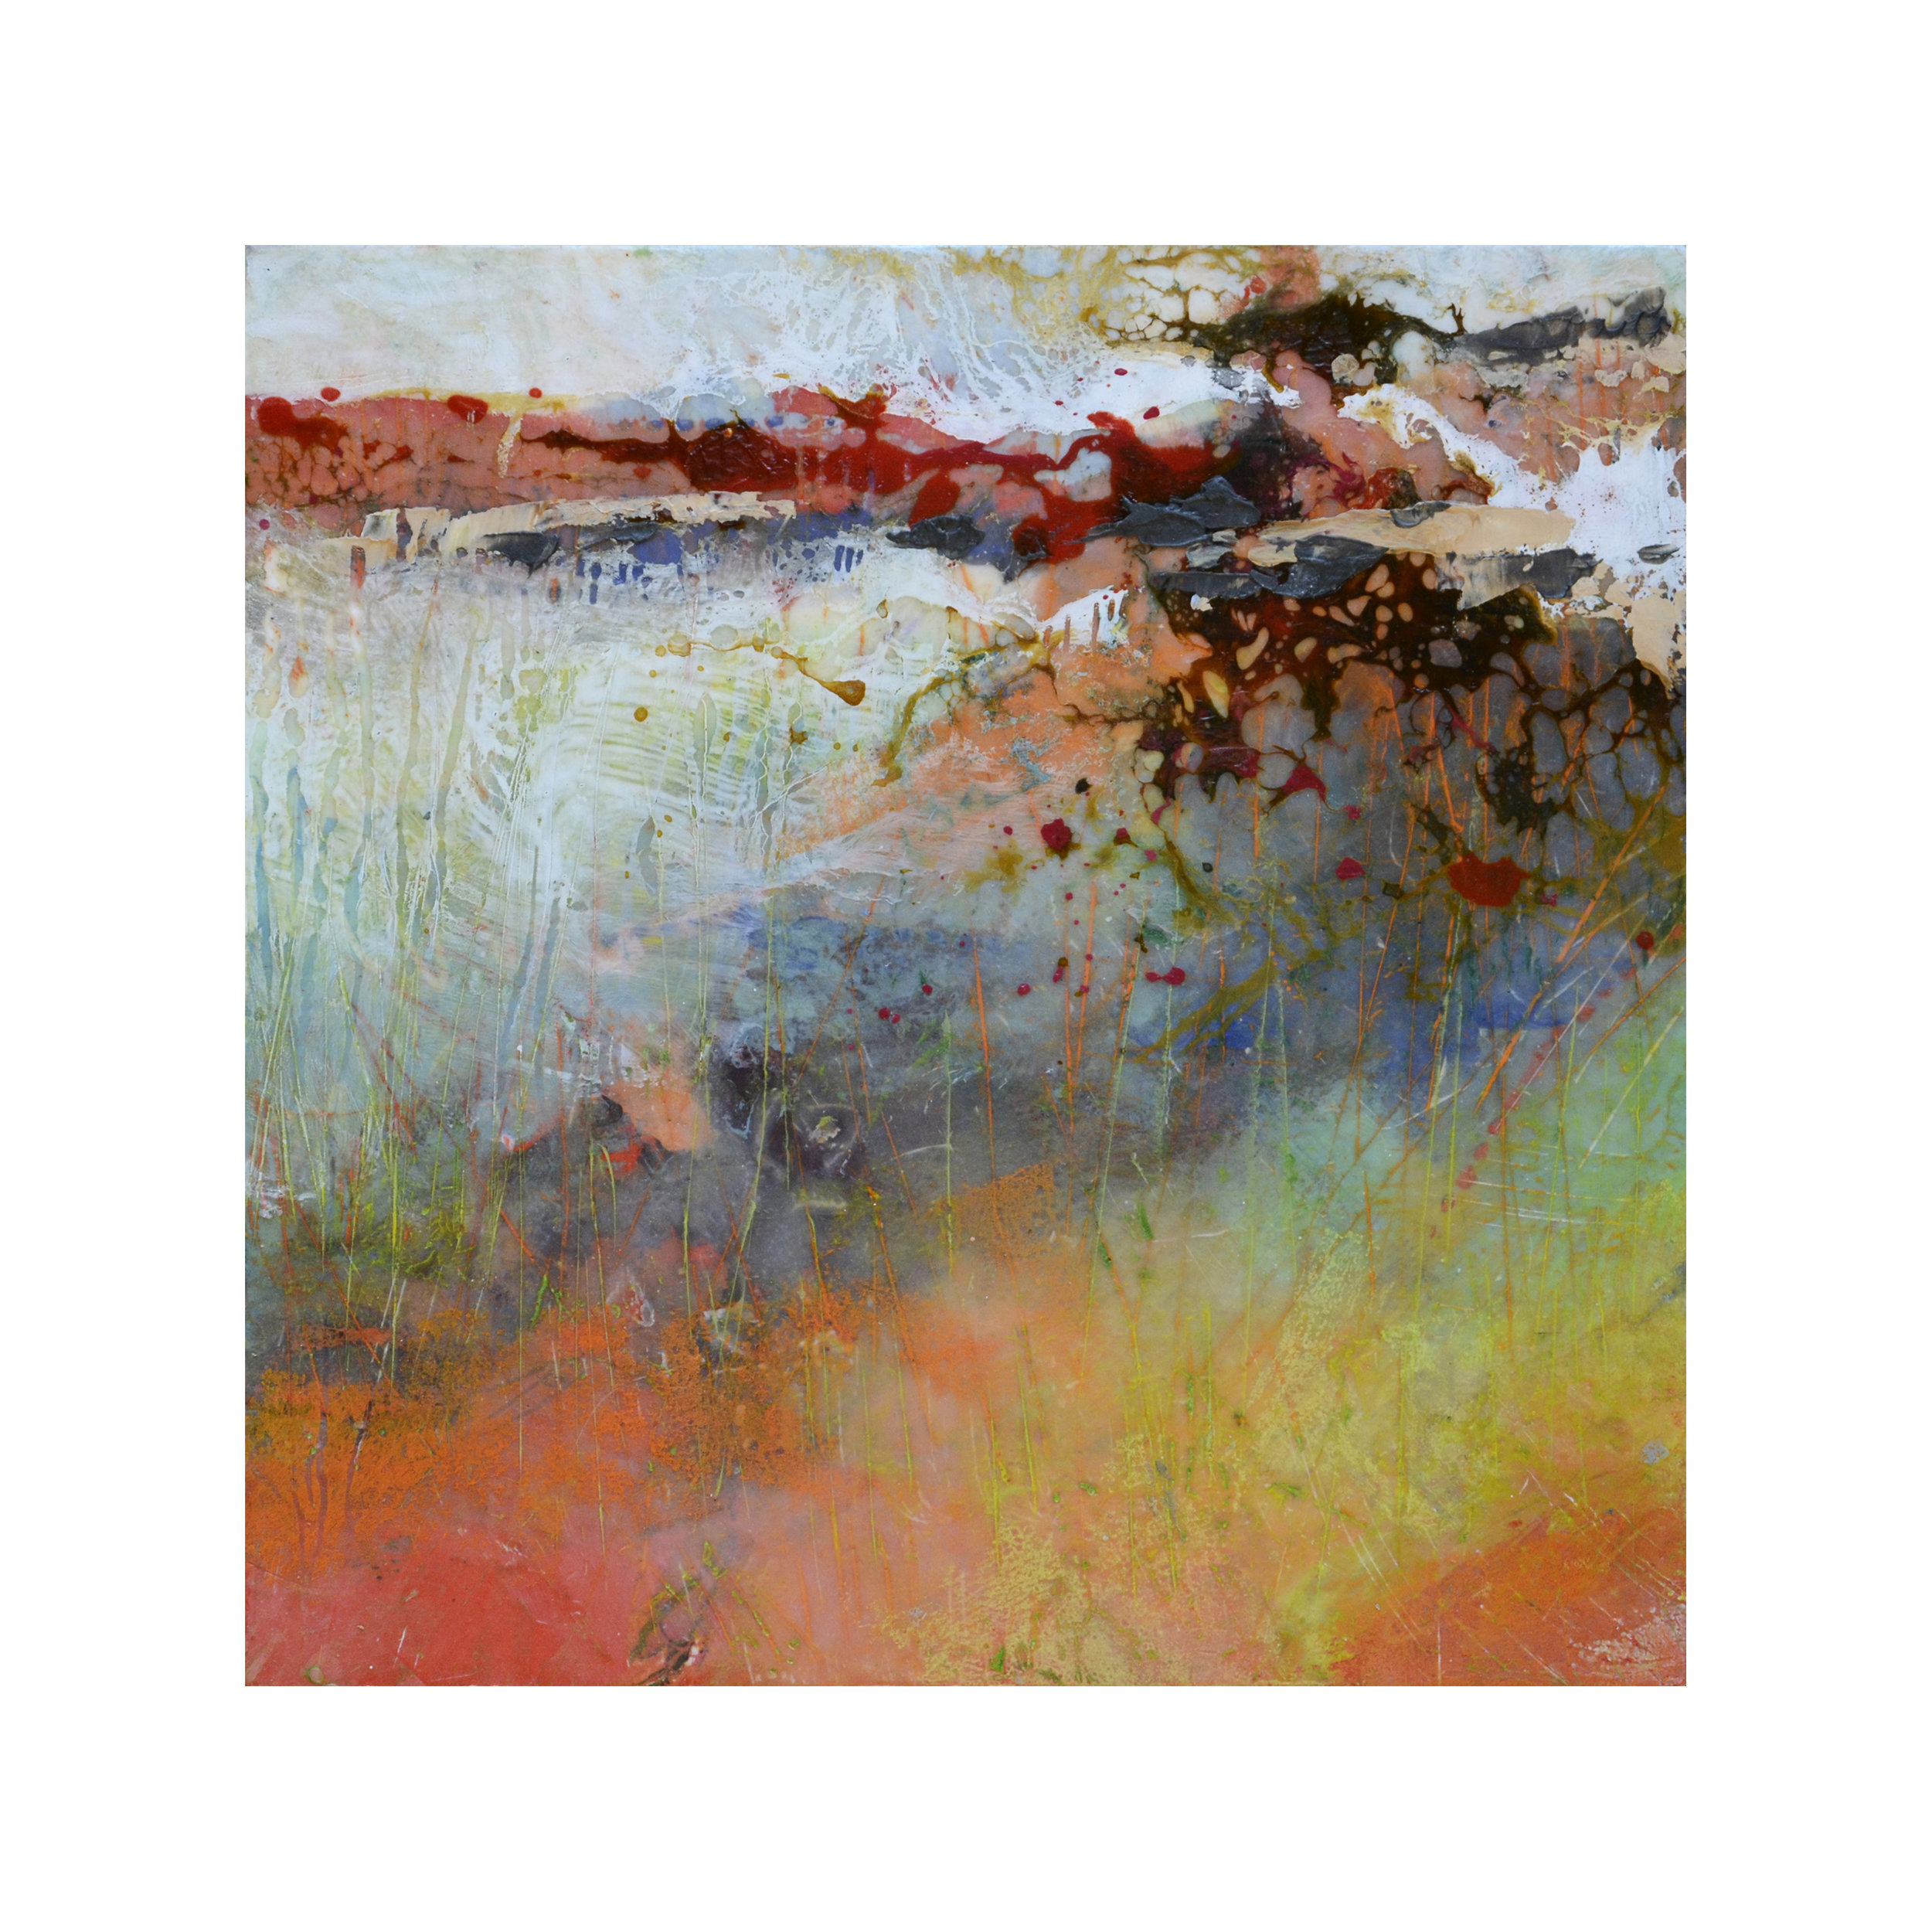 Deeply Truly   12 x 12  Encaustic on Panel  $300